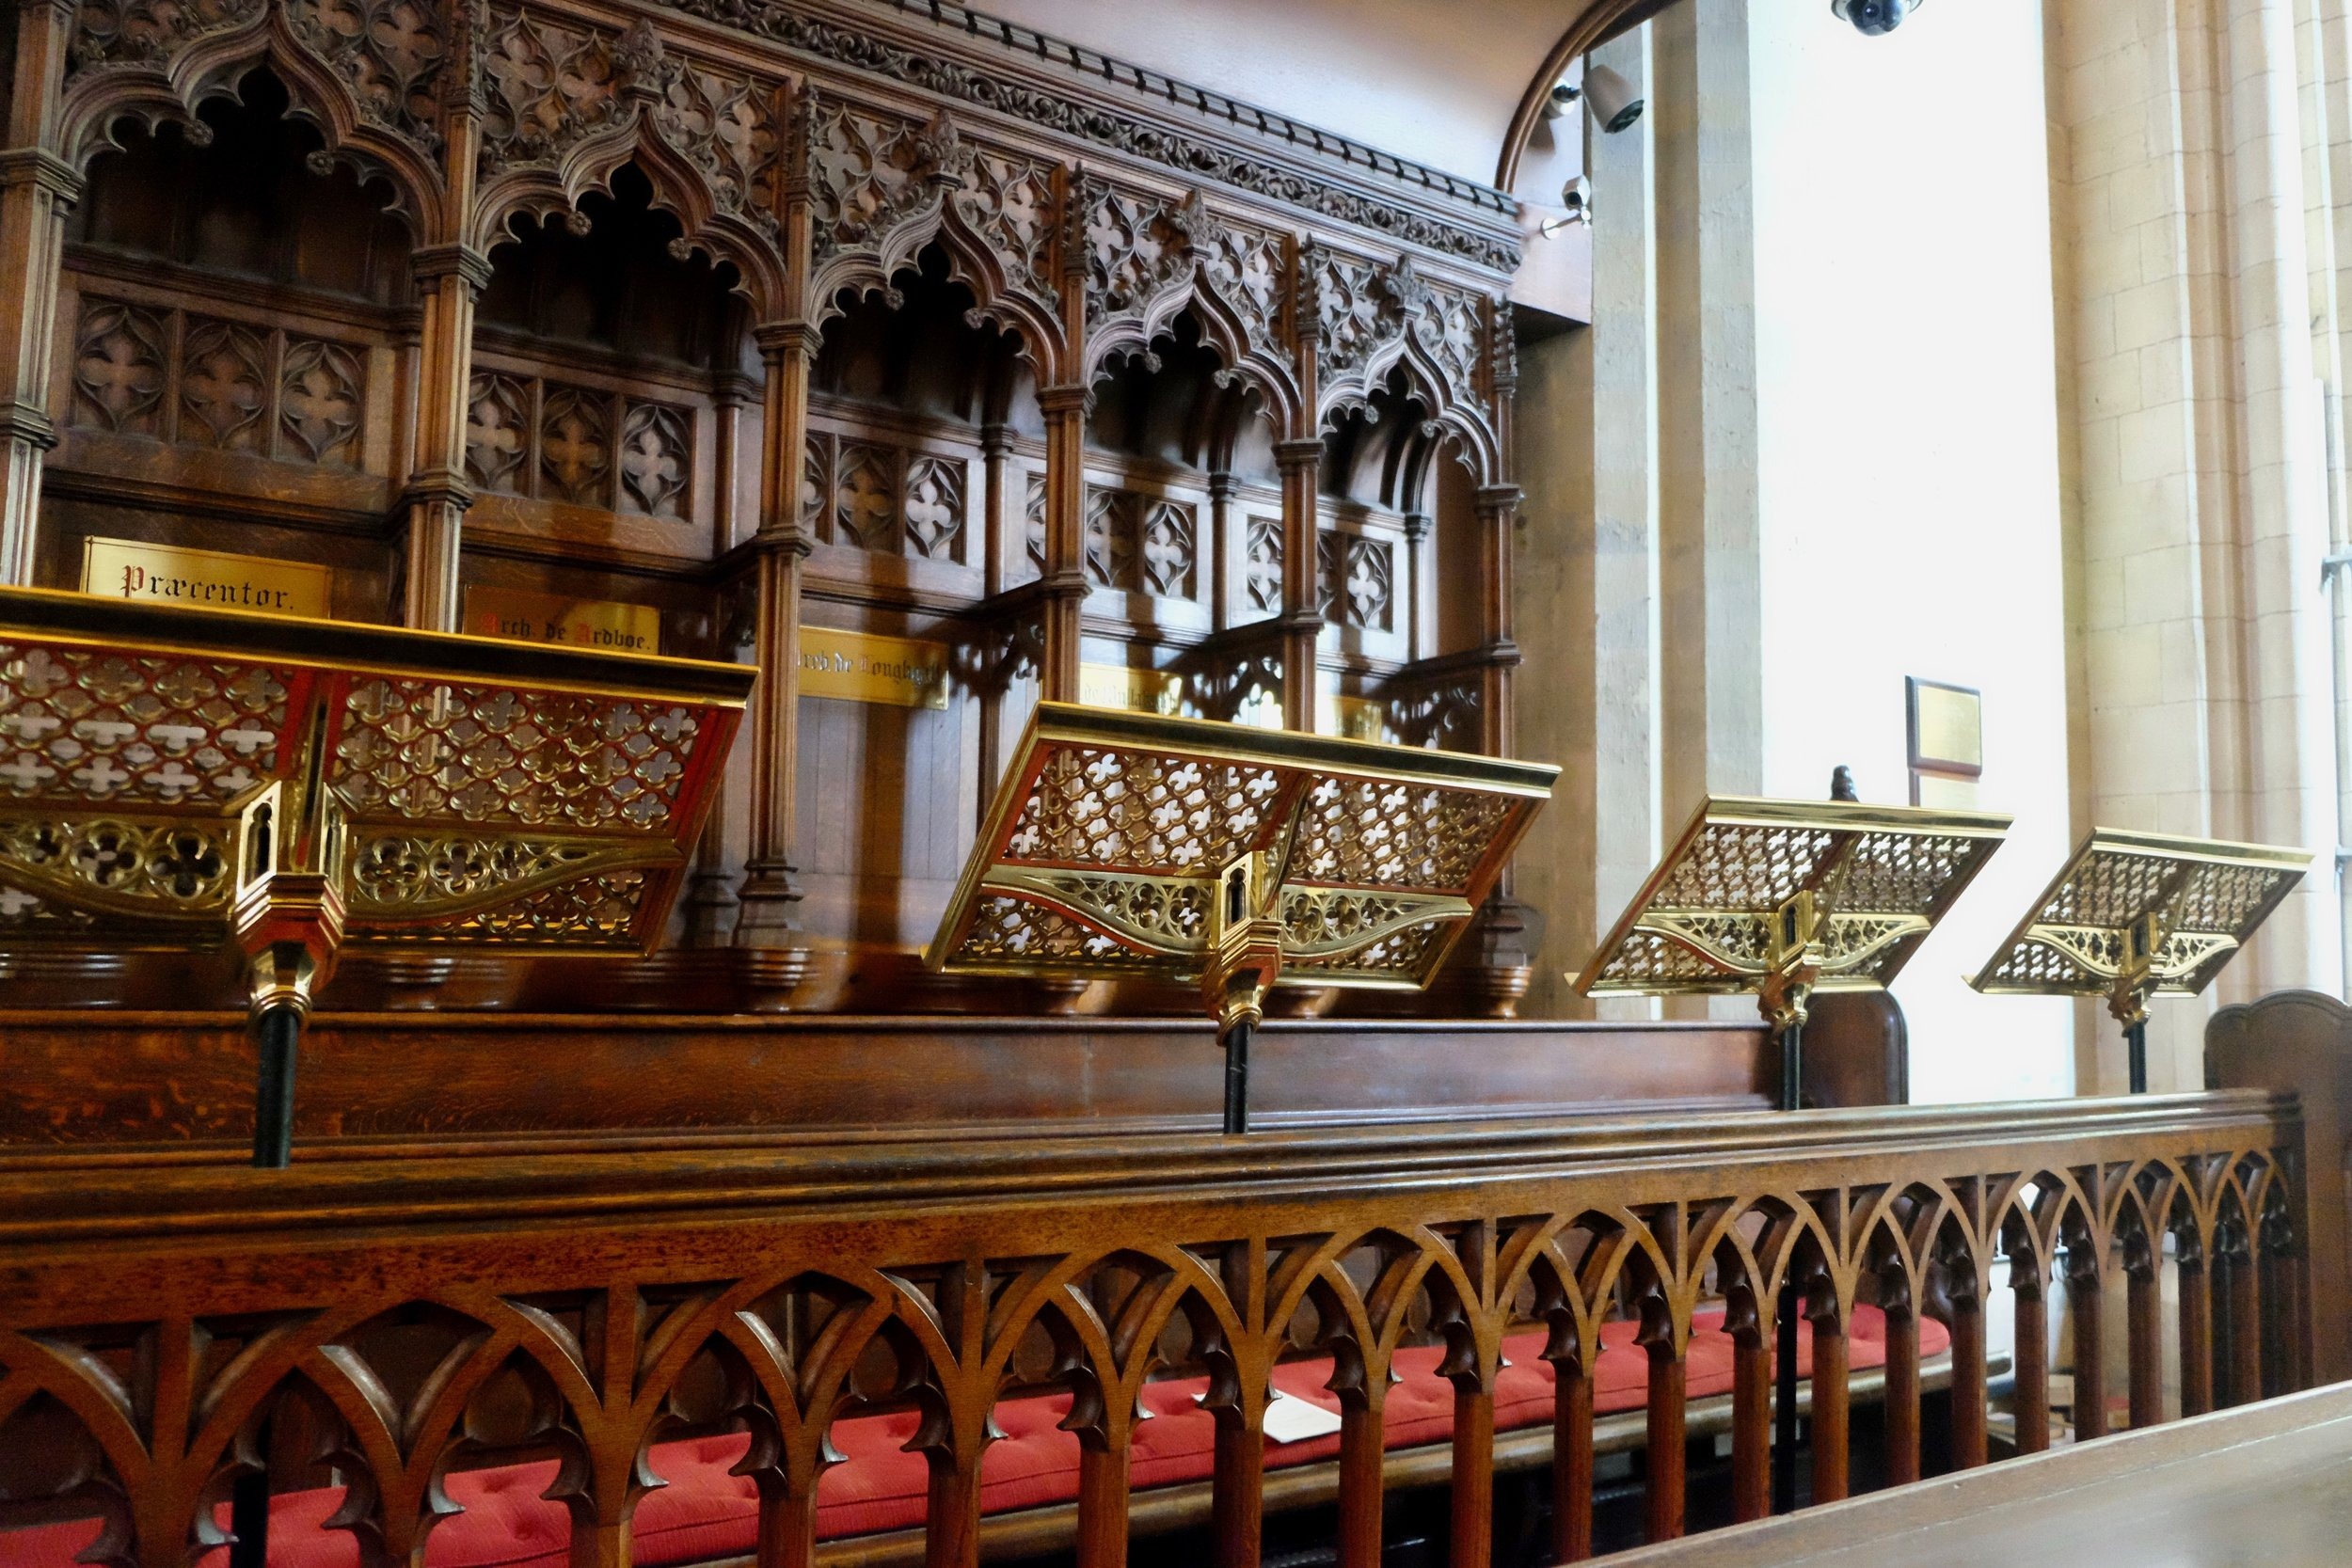 But still equally as beautiful in its own way, like the choir section with its luminous music stands and intricately carved pews.